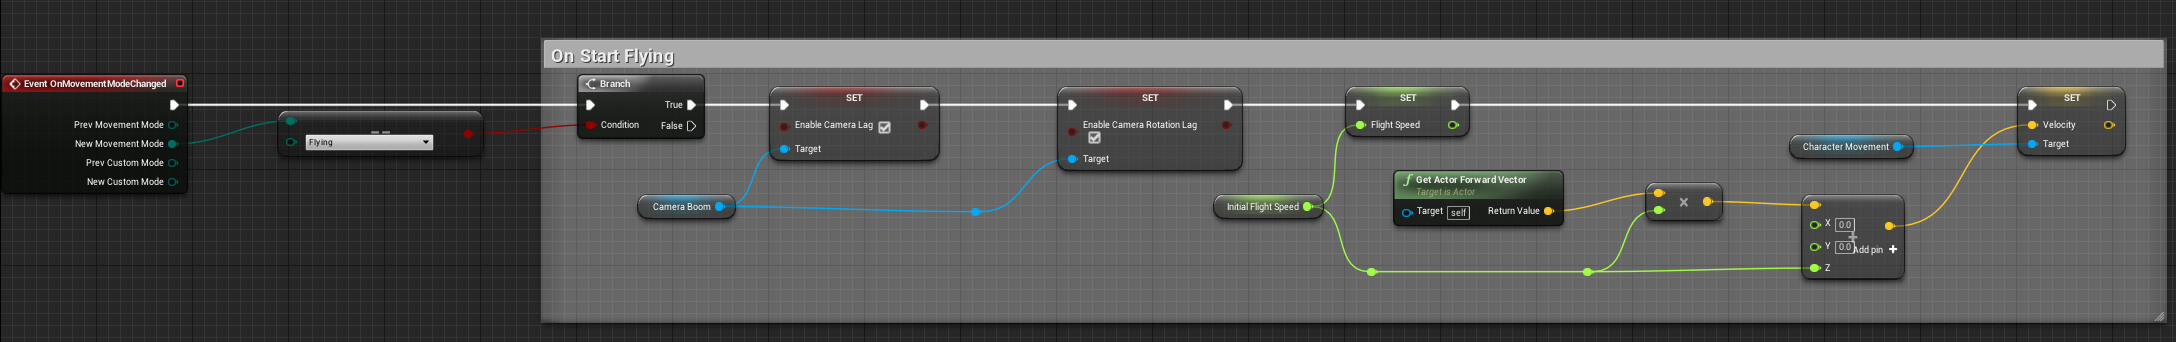 UE4Editor 2018-01-25 13-59-03.png